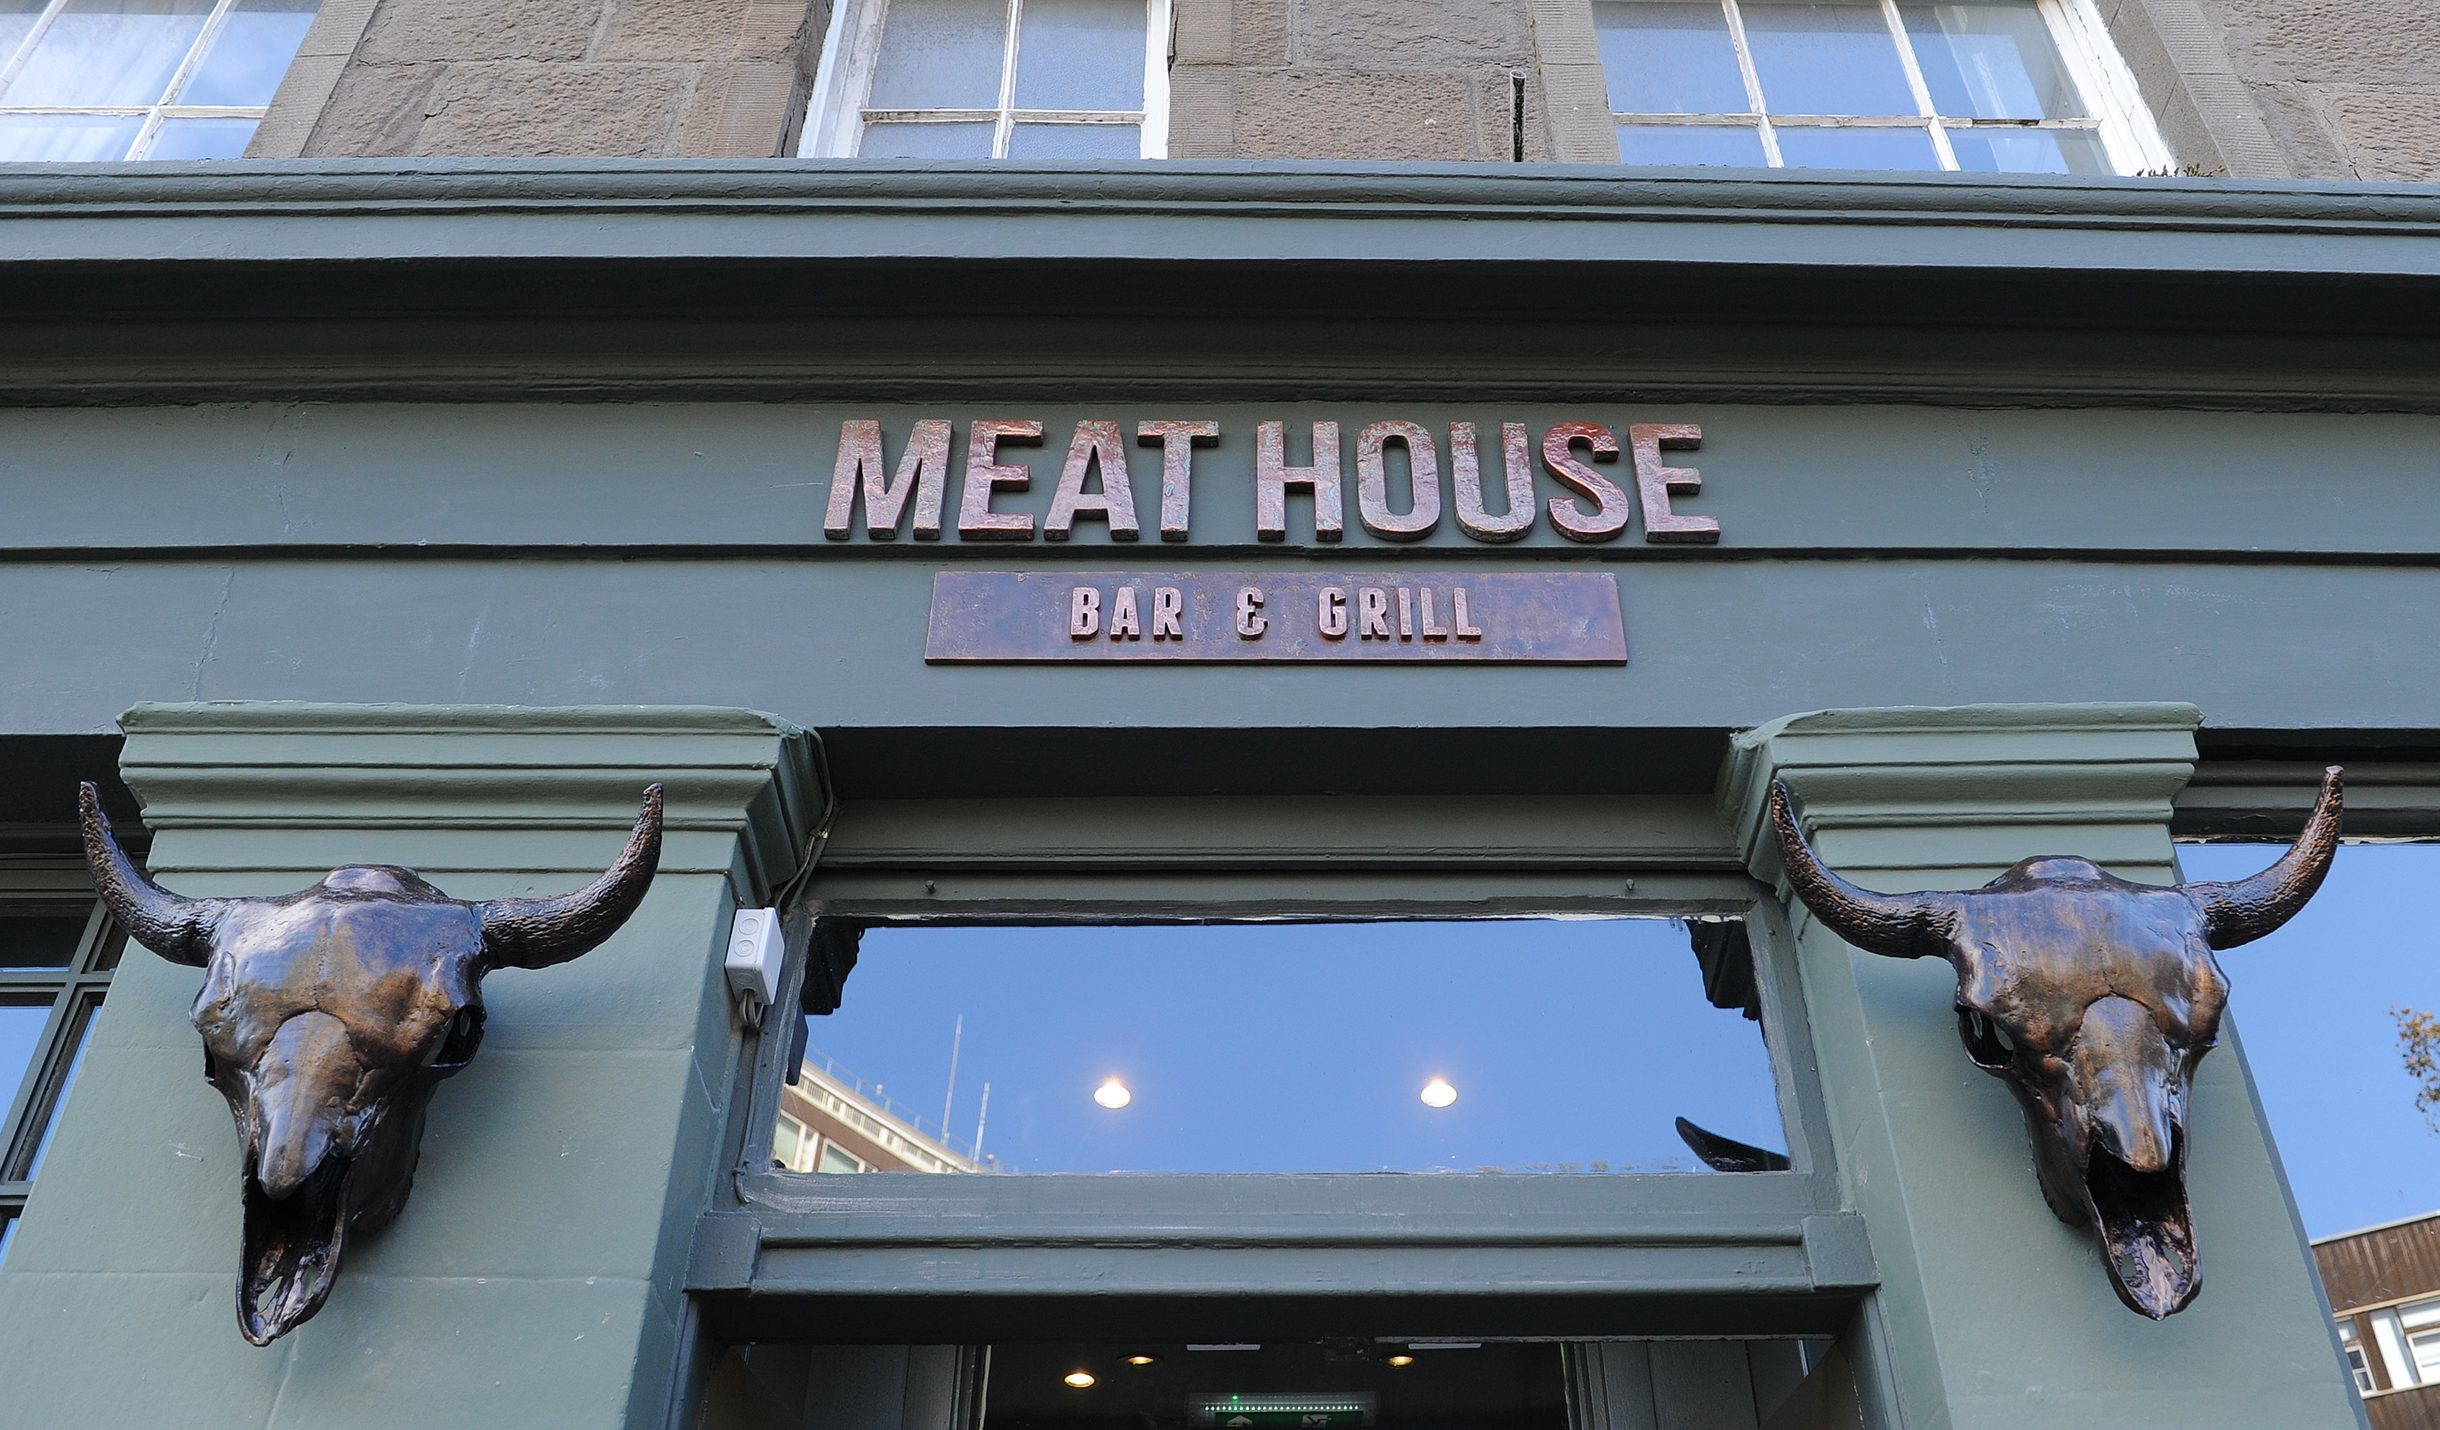 The Meat House closed suddenly in January